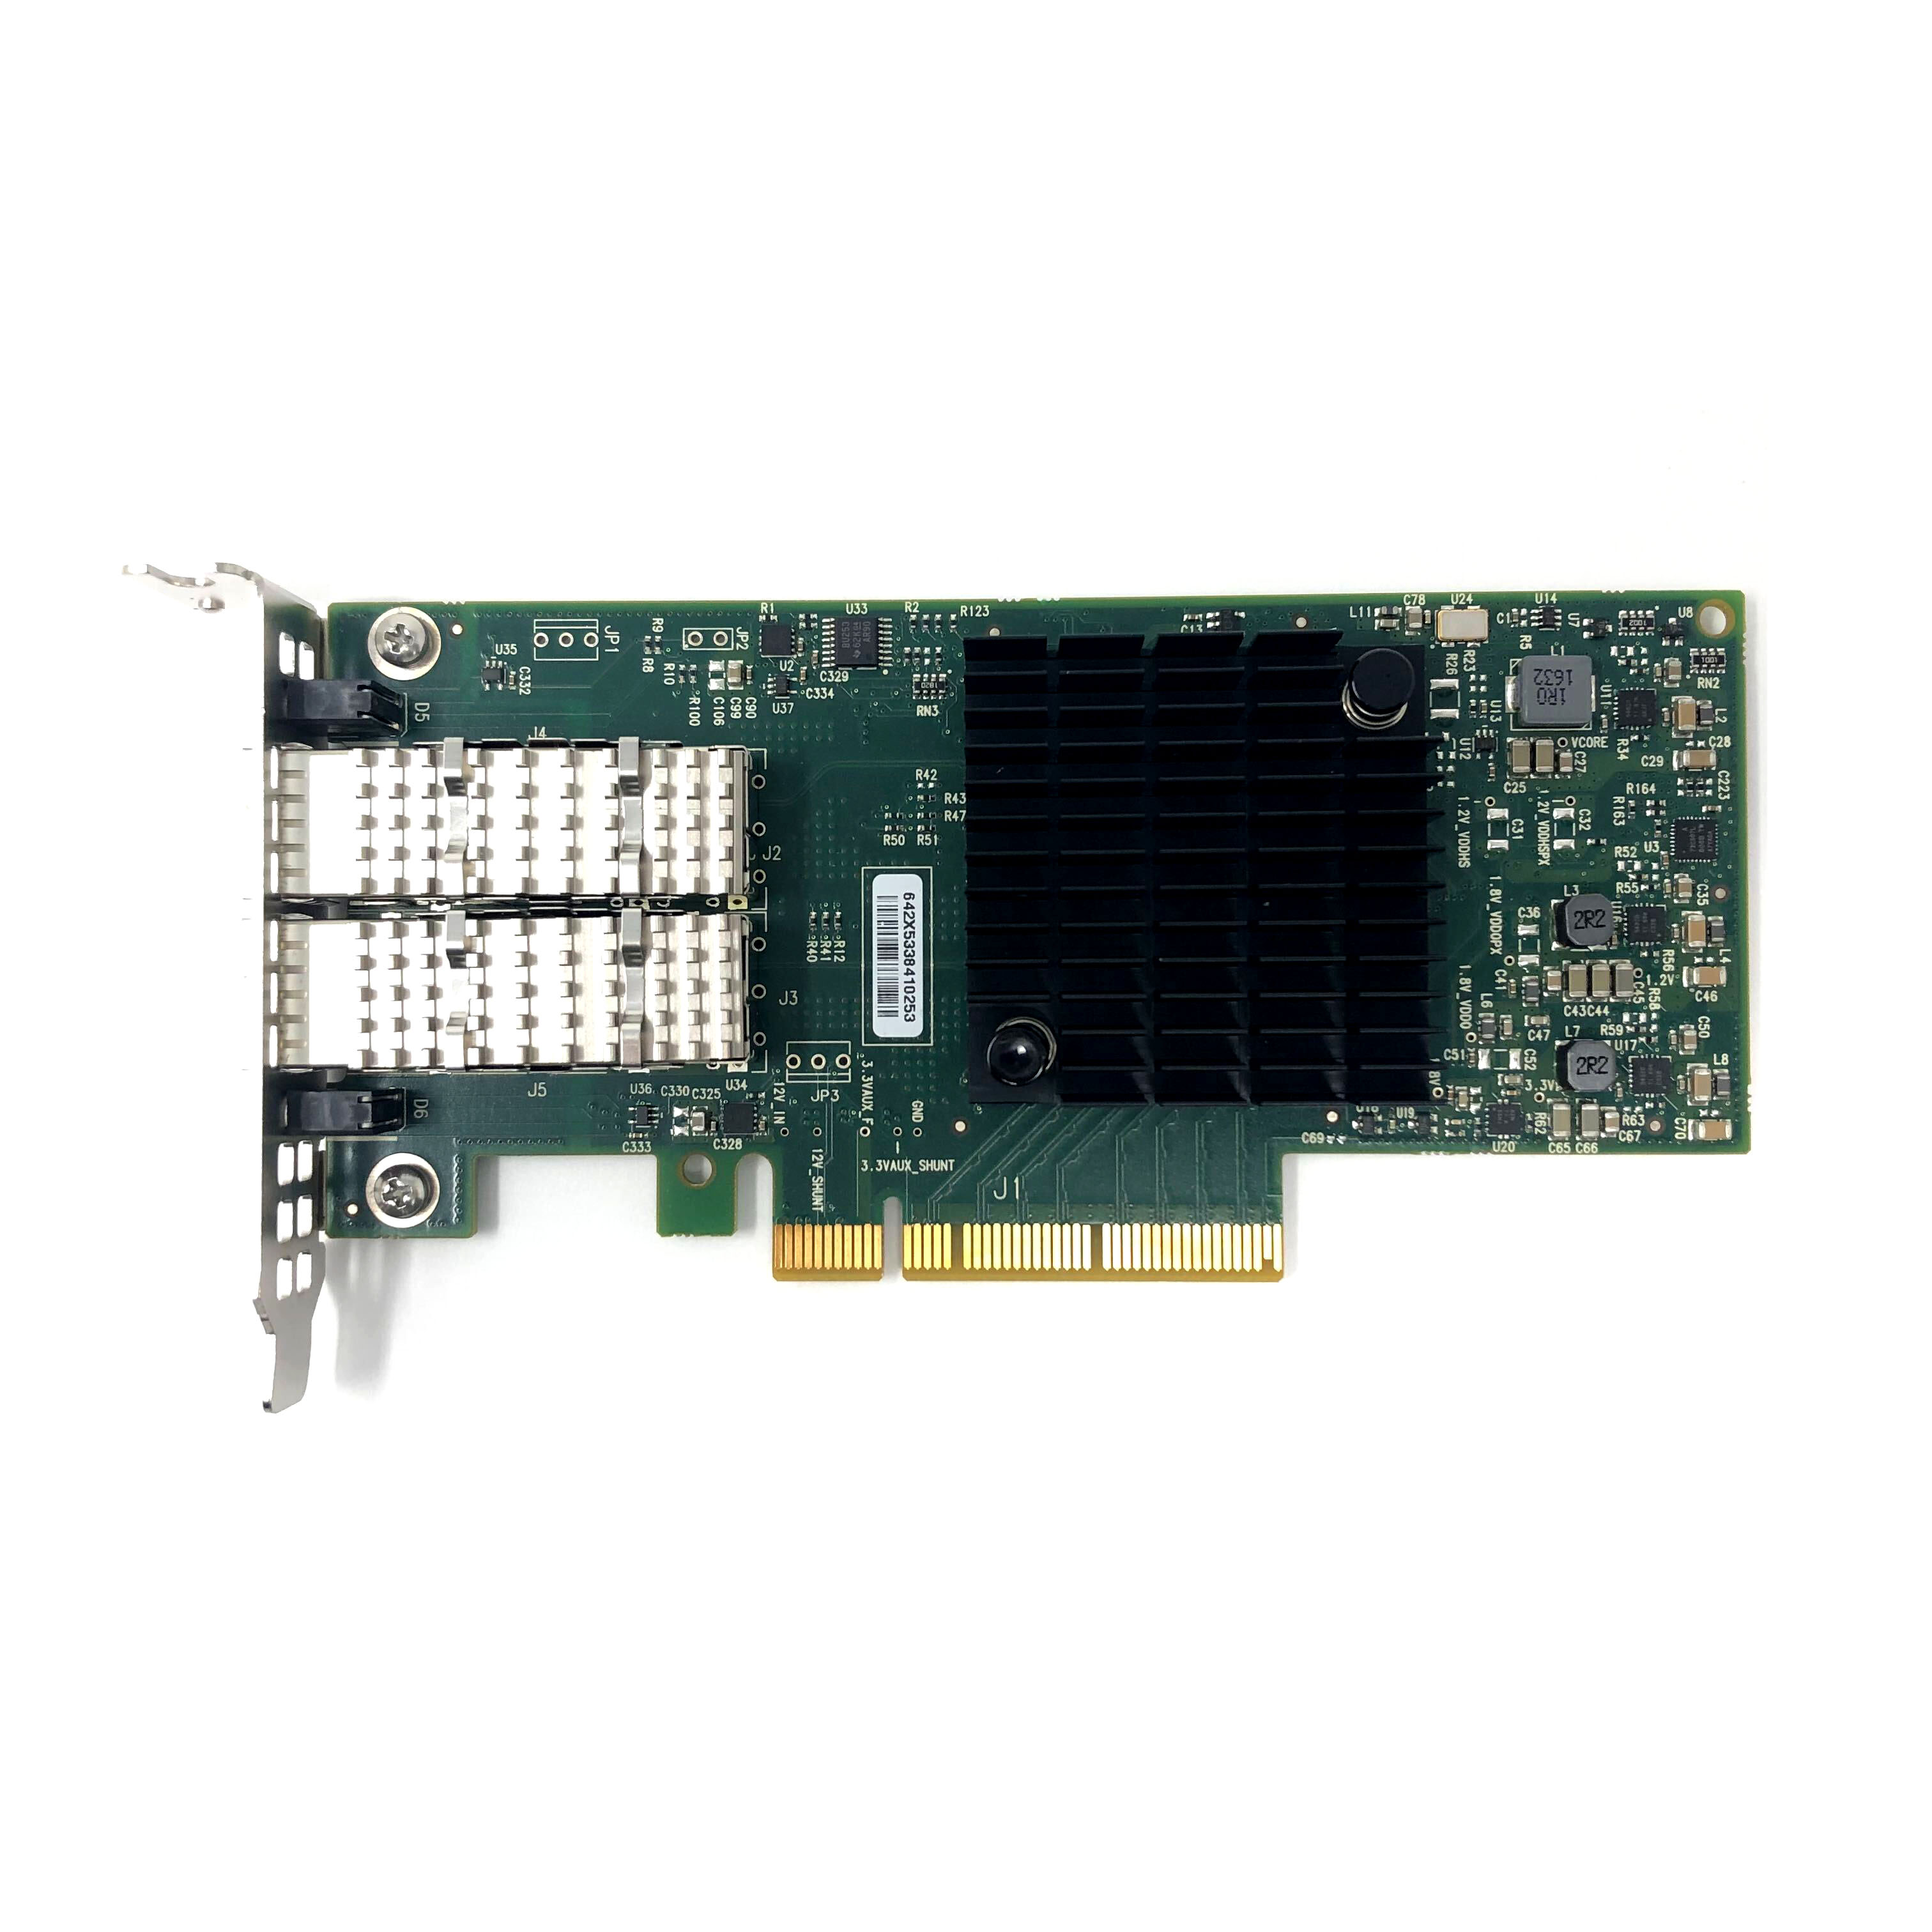 Dell ConnectX-4 CX4121C 25GbE SFP28 Dual Port PCIe Network Card Low Profile (OEM-MCX4121A-ACAT)